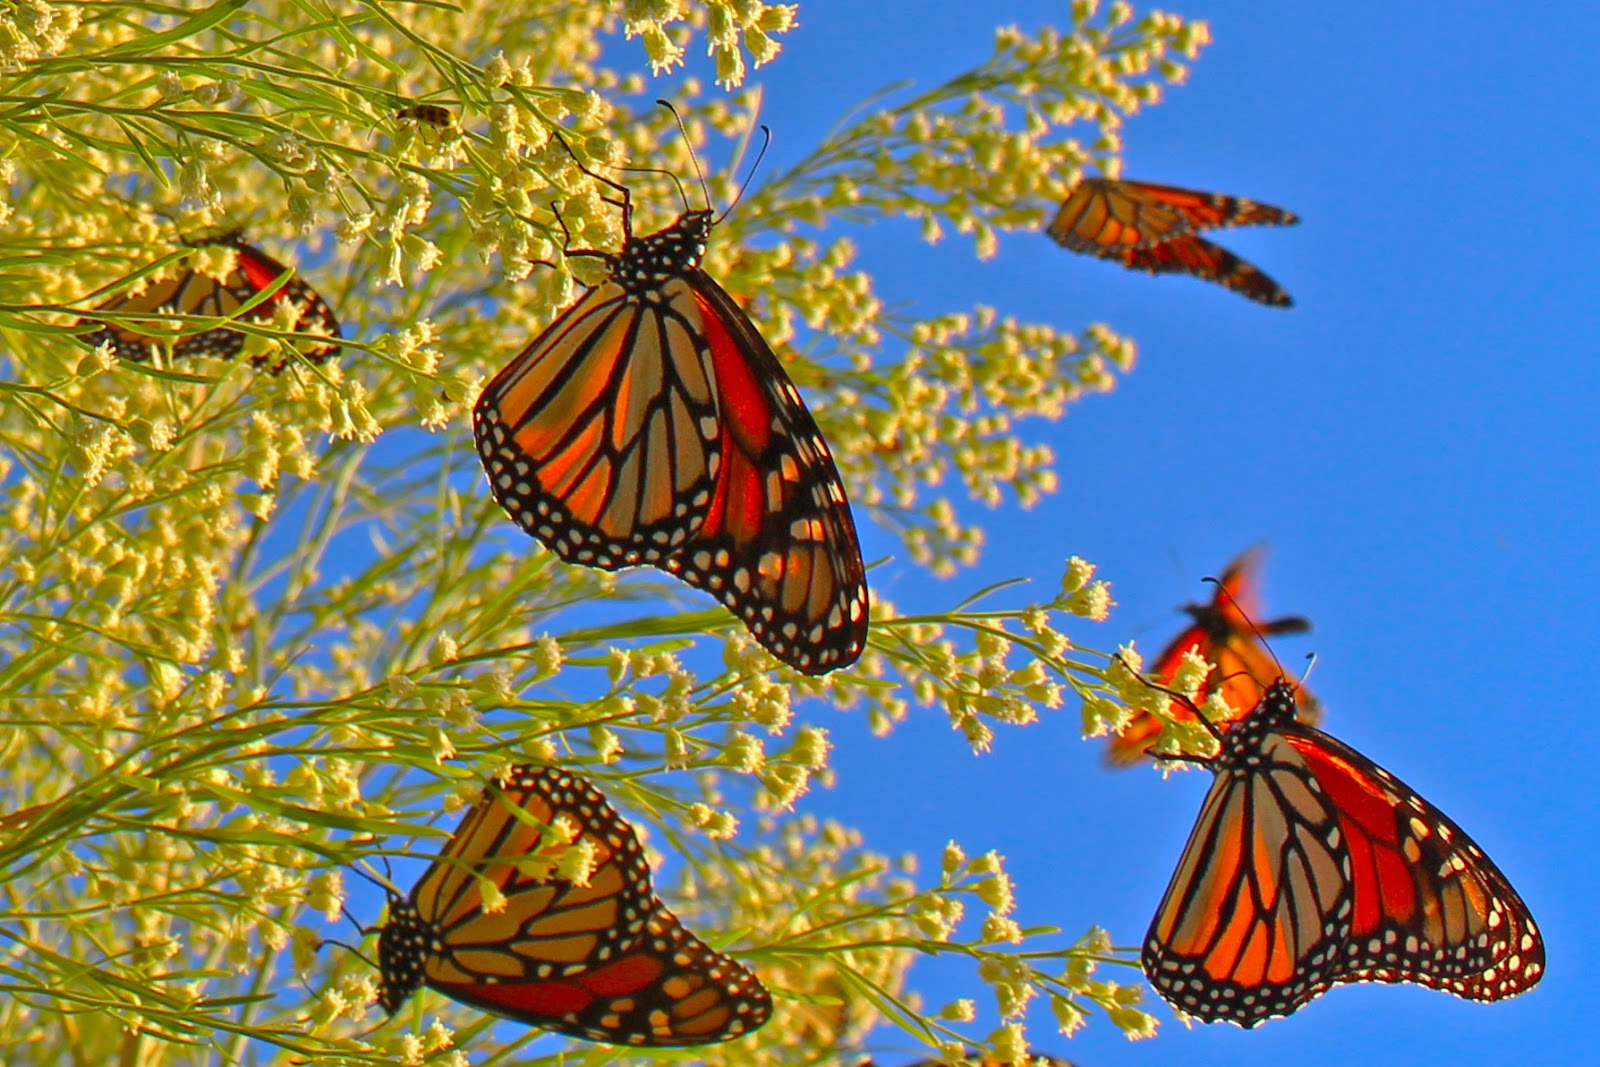 Monarch butterfly migration tree - photo#53